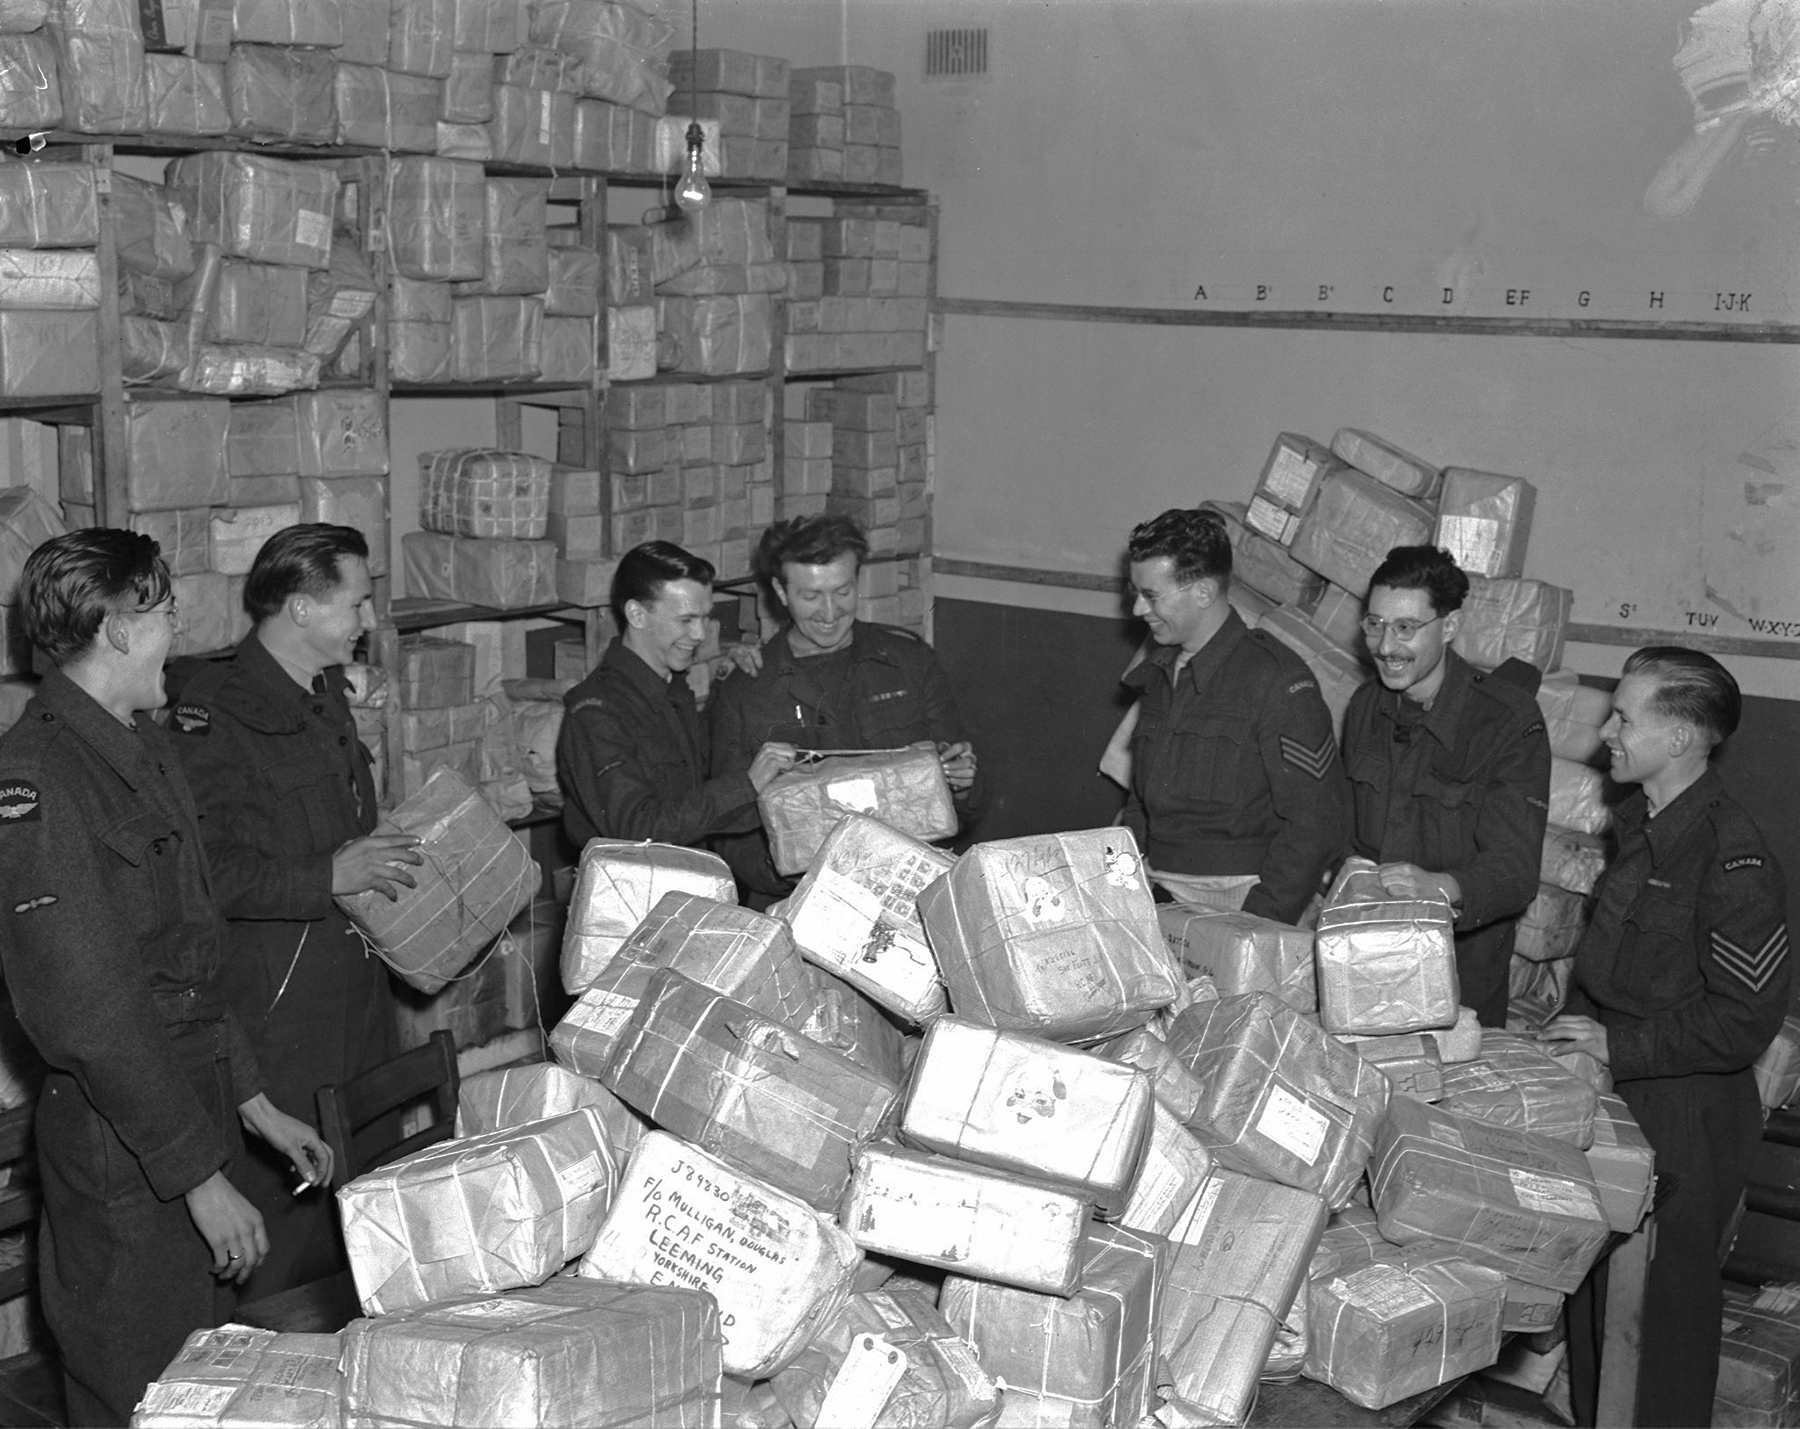 Christmas never means holidays in wartime, and certainly not for these postmen at RAF Leeming in England, surrounded by Yuletide mail that has arrived from Canada. They will work far into the night to make sure that every member of the RCAF receives mail from home. PHOTO: DND Archives, PL-46607